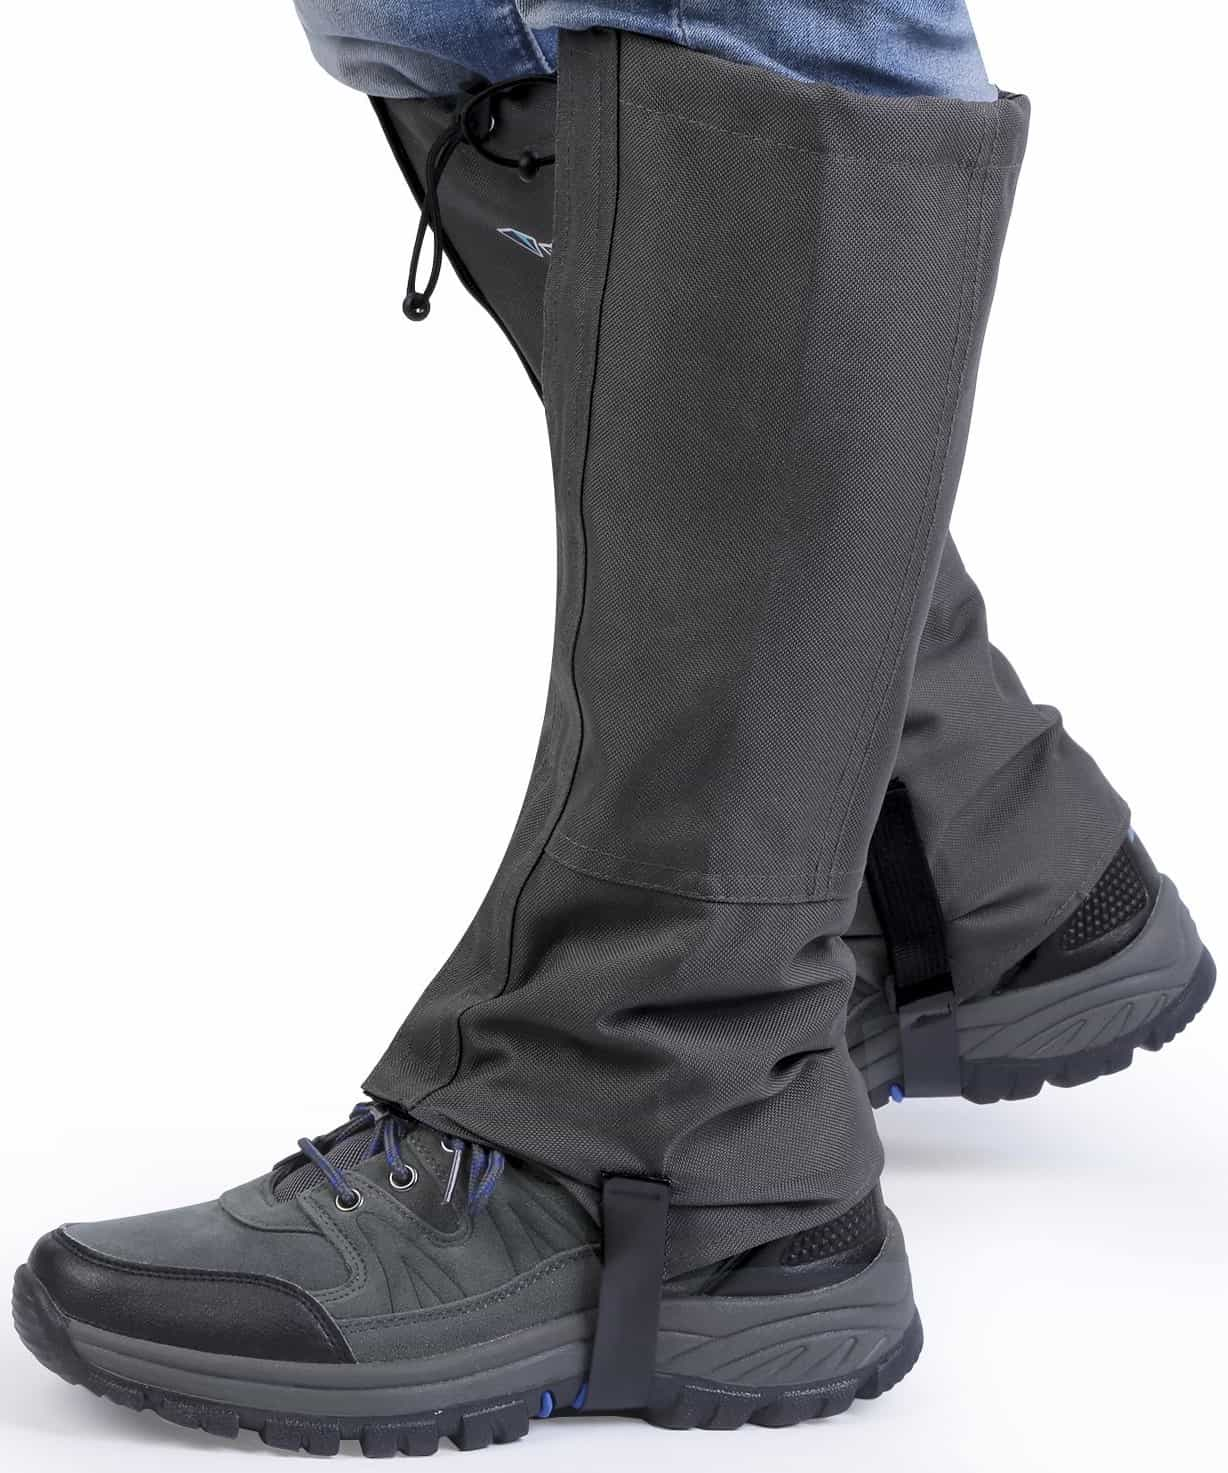 OUTAD Waterproof Outdoor Gaiters